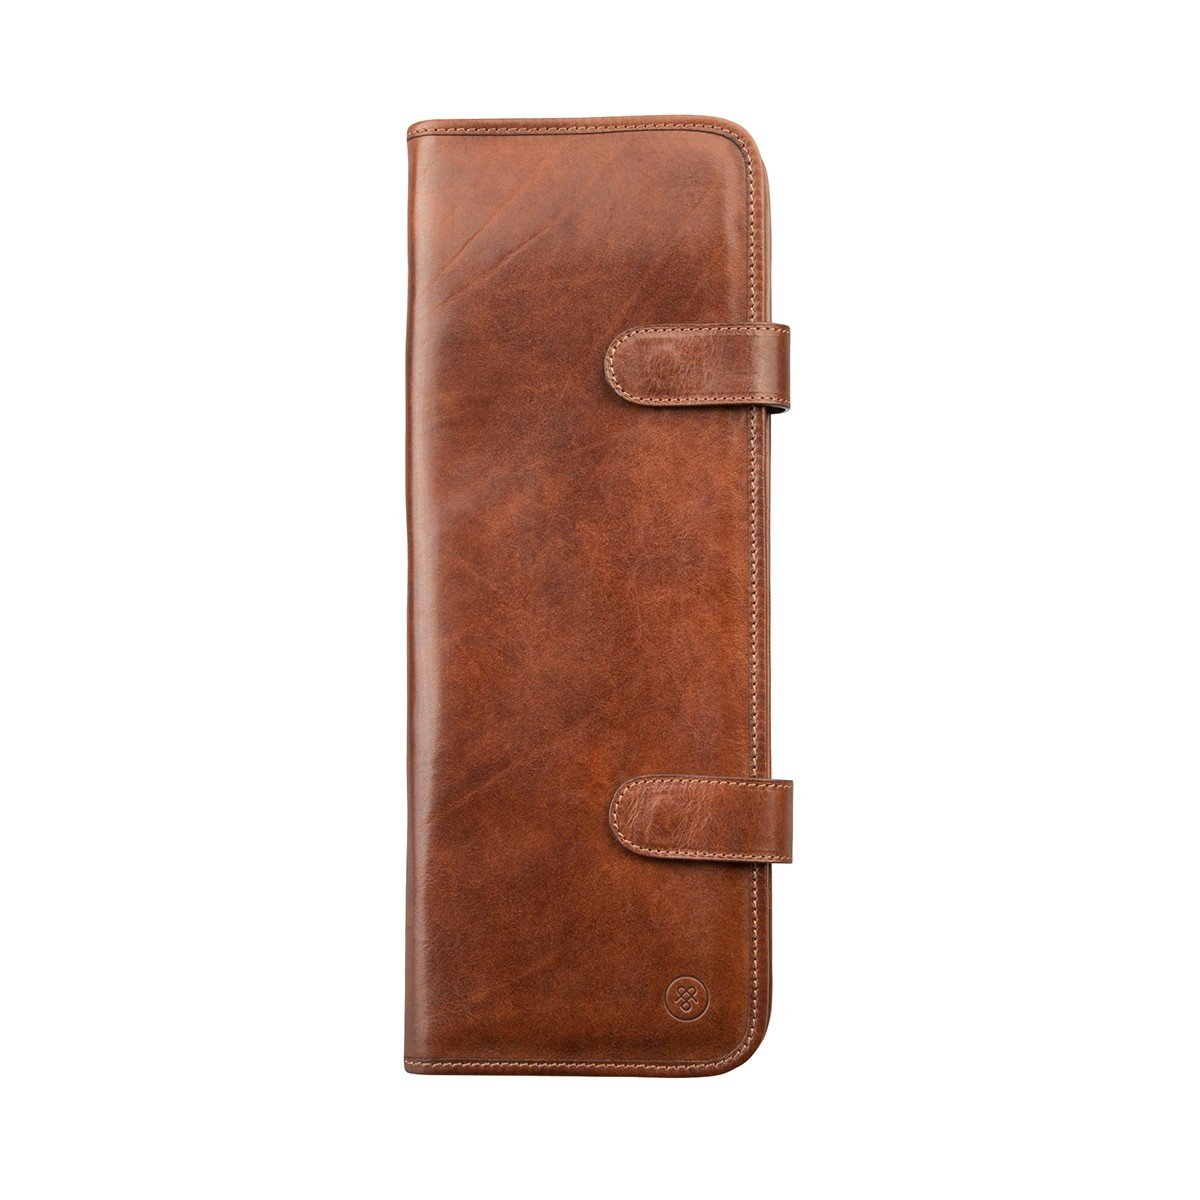 Maxwell Scott Personalized Luxury Italian Tan Brown Leather Tie Case (Tivoli) by Maxwell Scott Bags